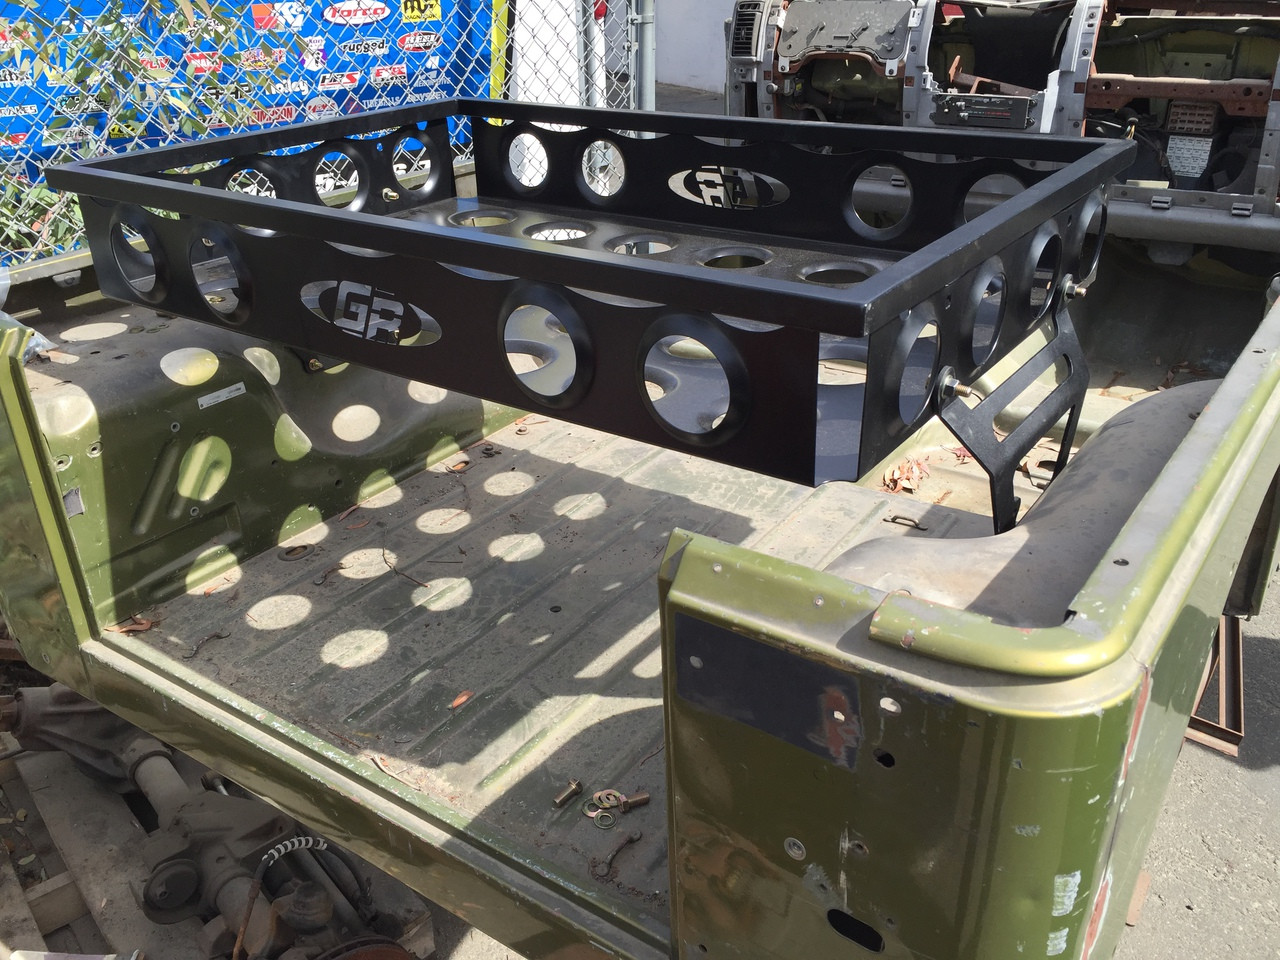 Shown here in lower mounting holes of cargo carrier in a TJ.